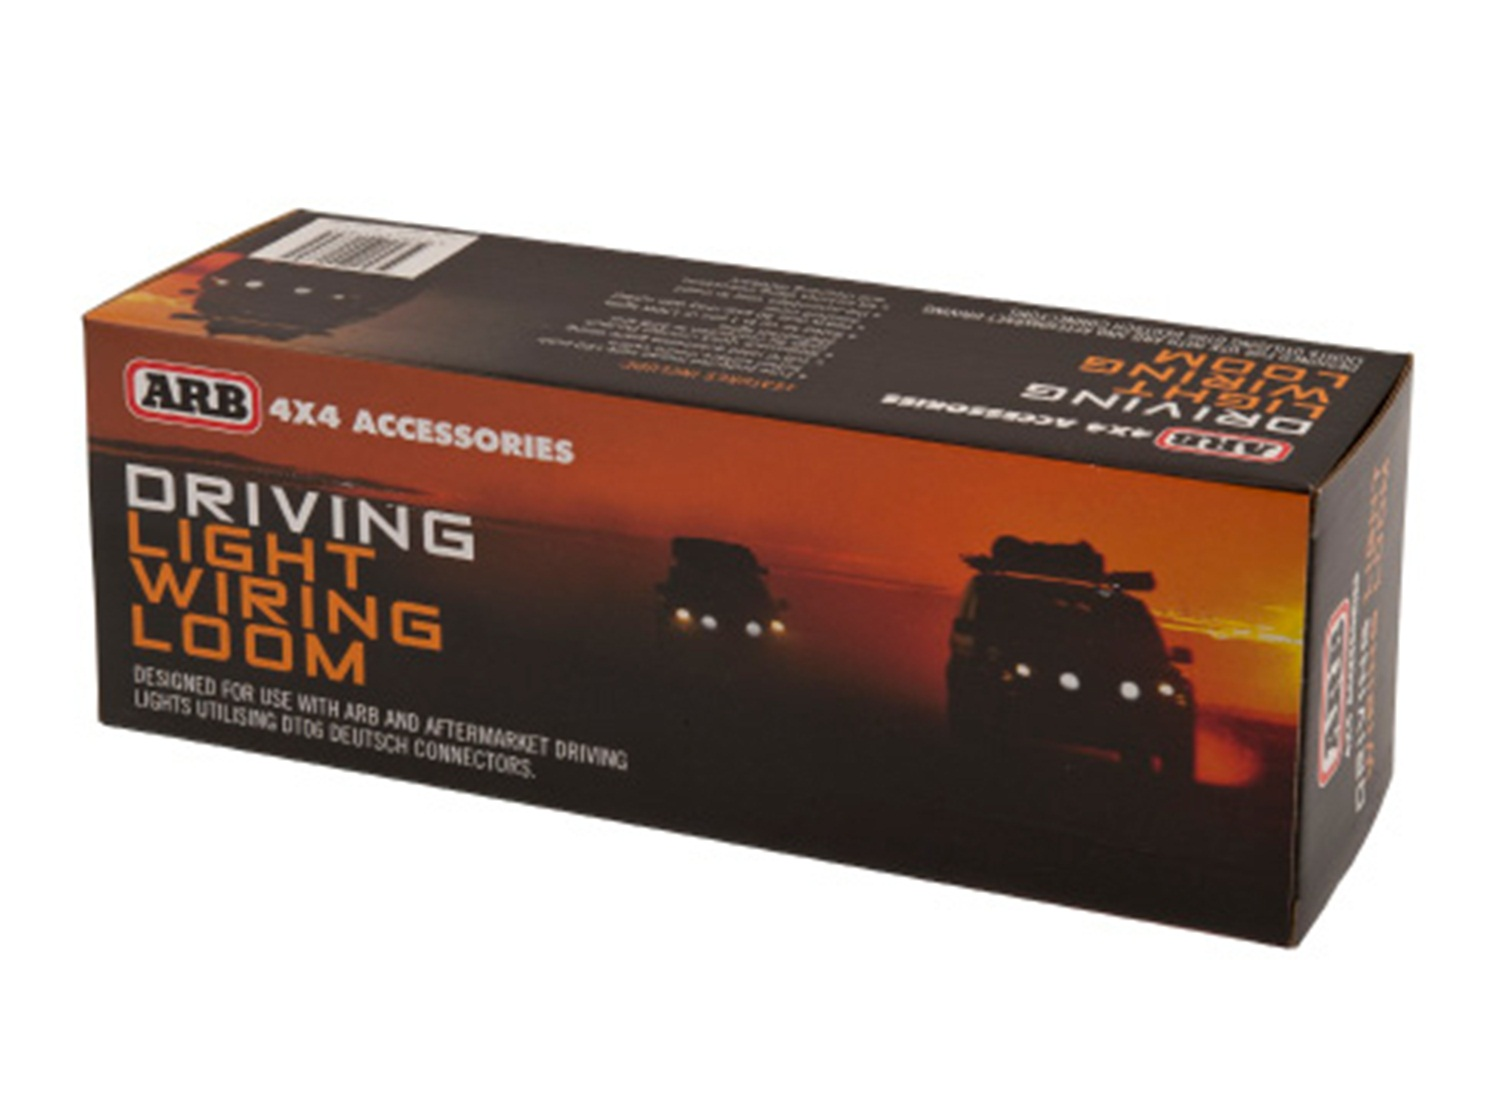 ARB 4x4 Accessories 3500520 Intensity Driving LED Wiring Loom